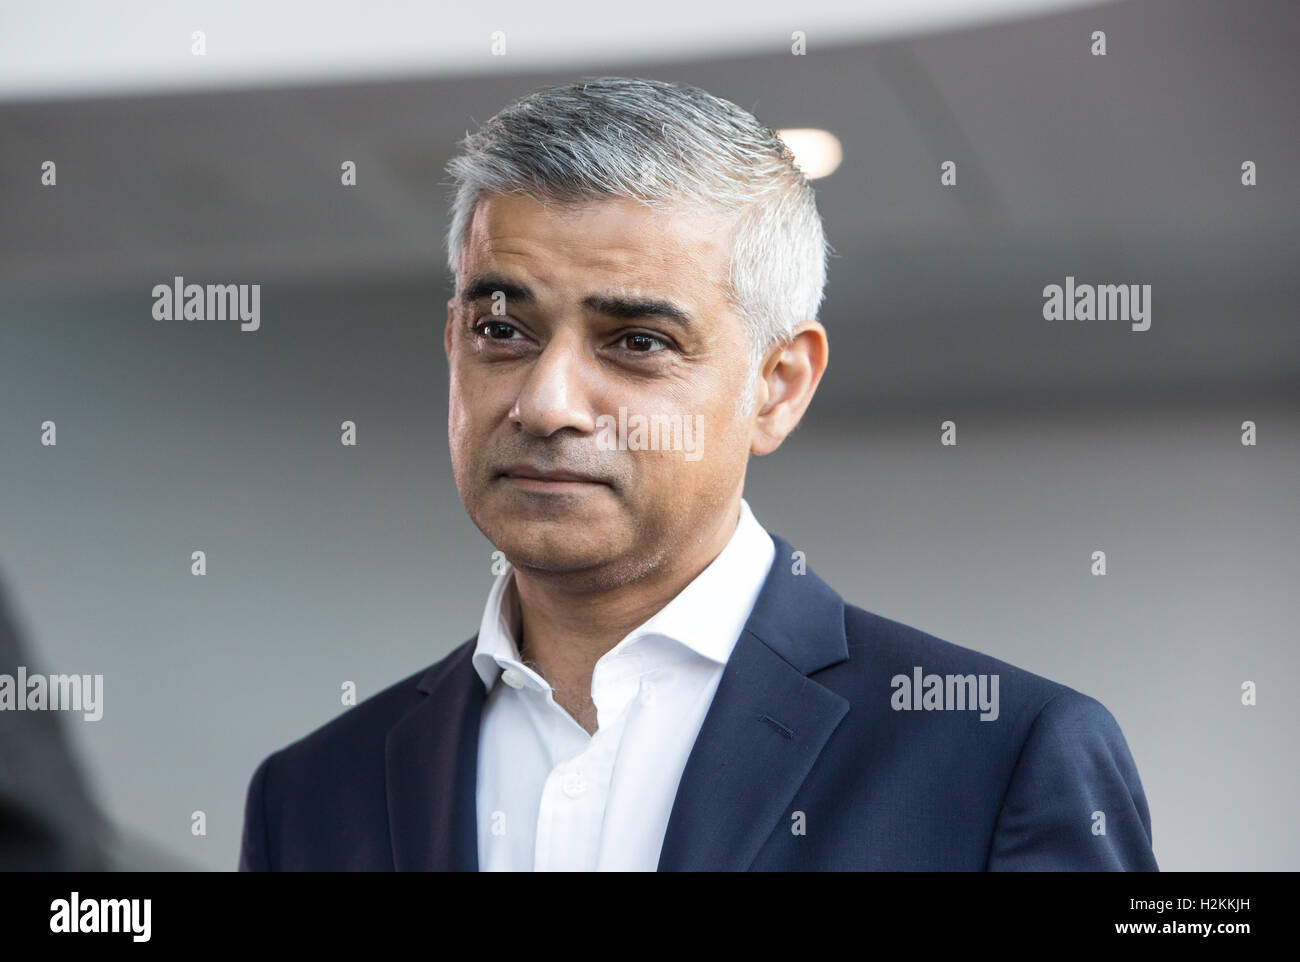 Newly elected Mayor of London,Sadiq Khan,gives an interview at the Labour party conference in Liverpool 2016 - Stock Image